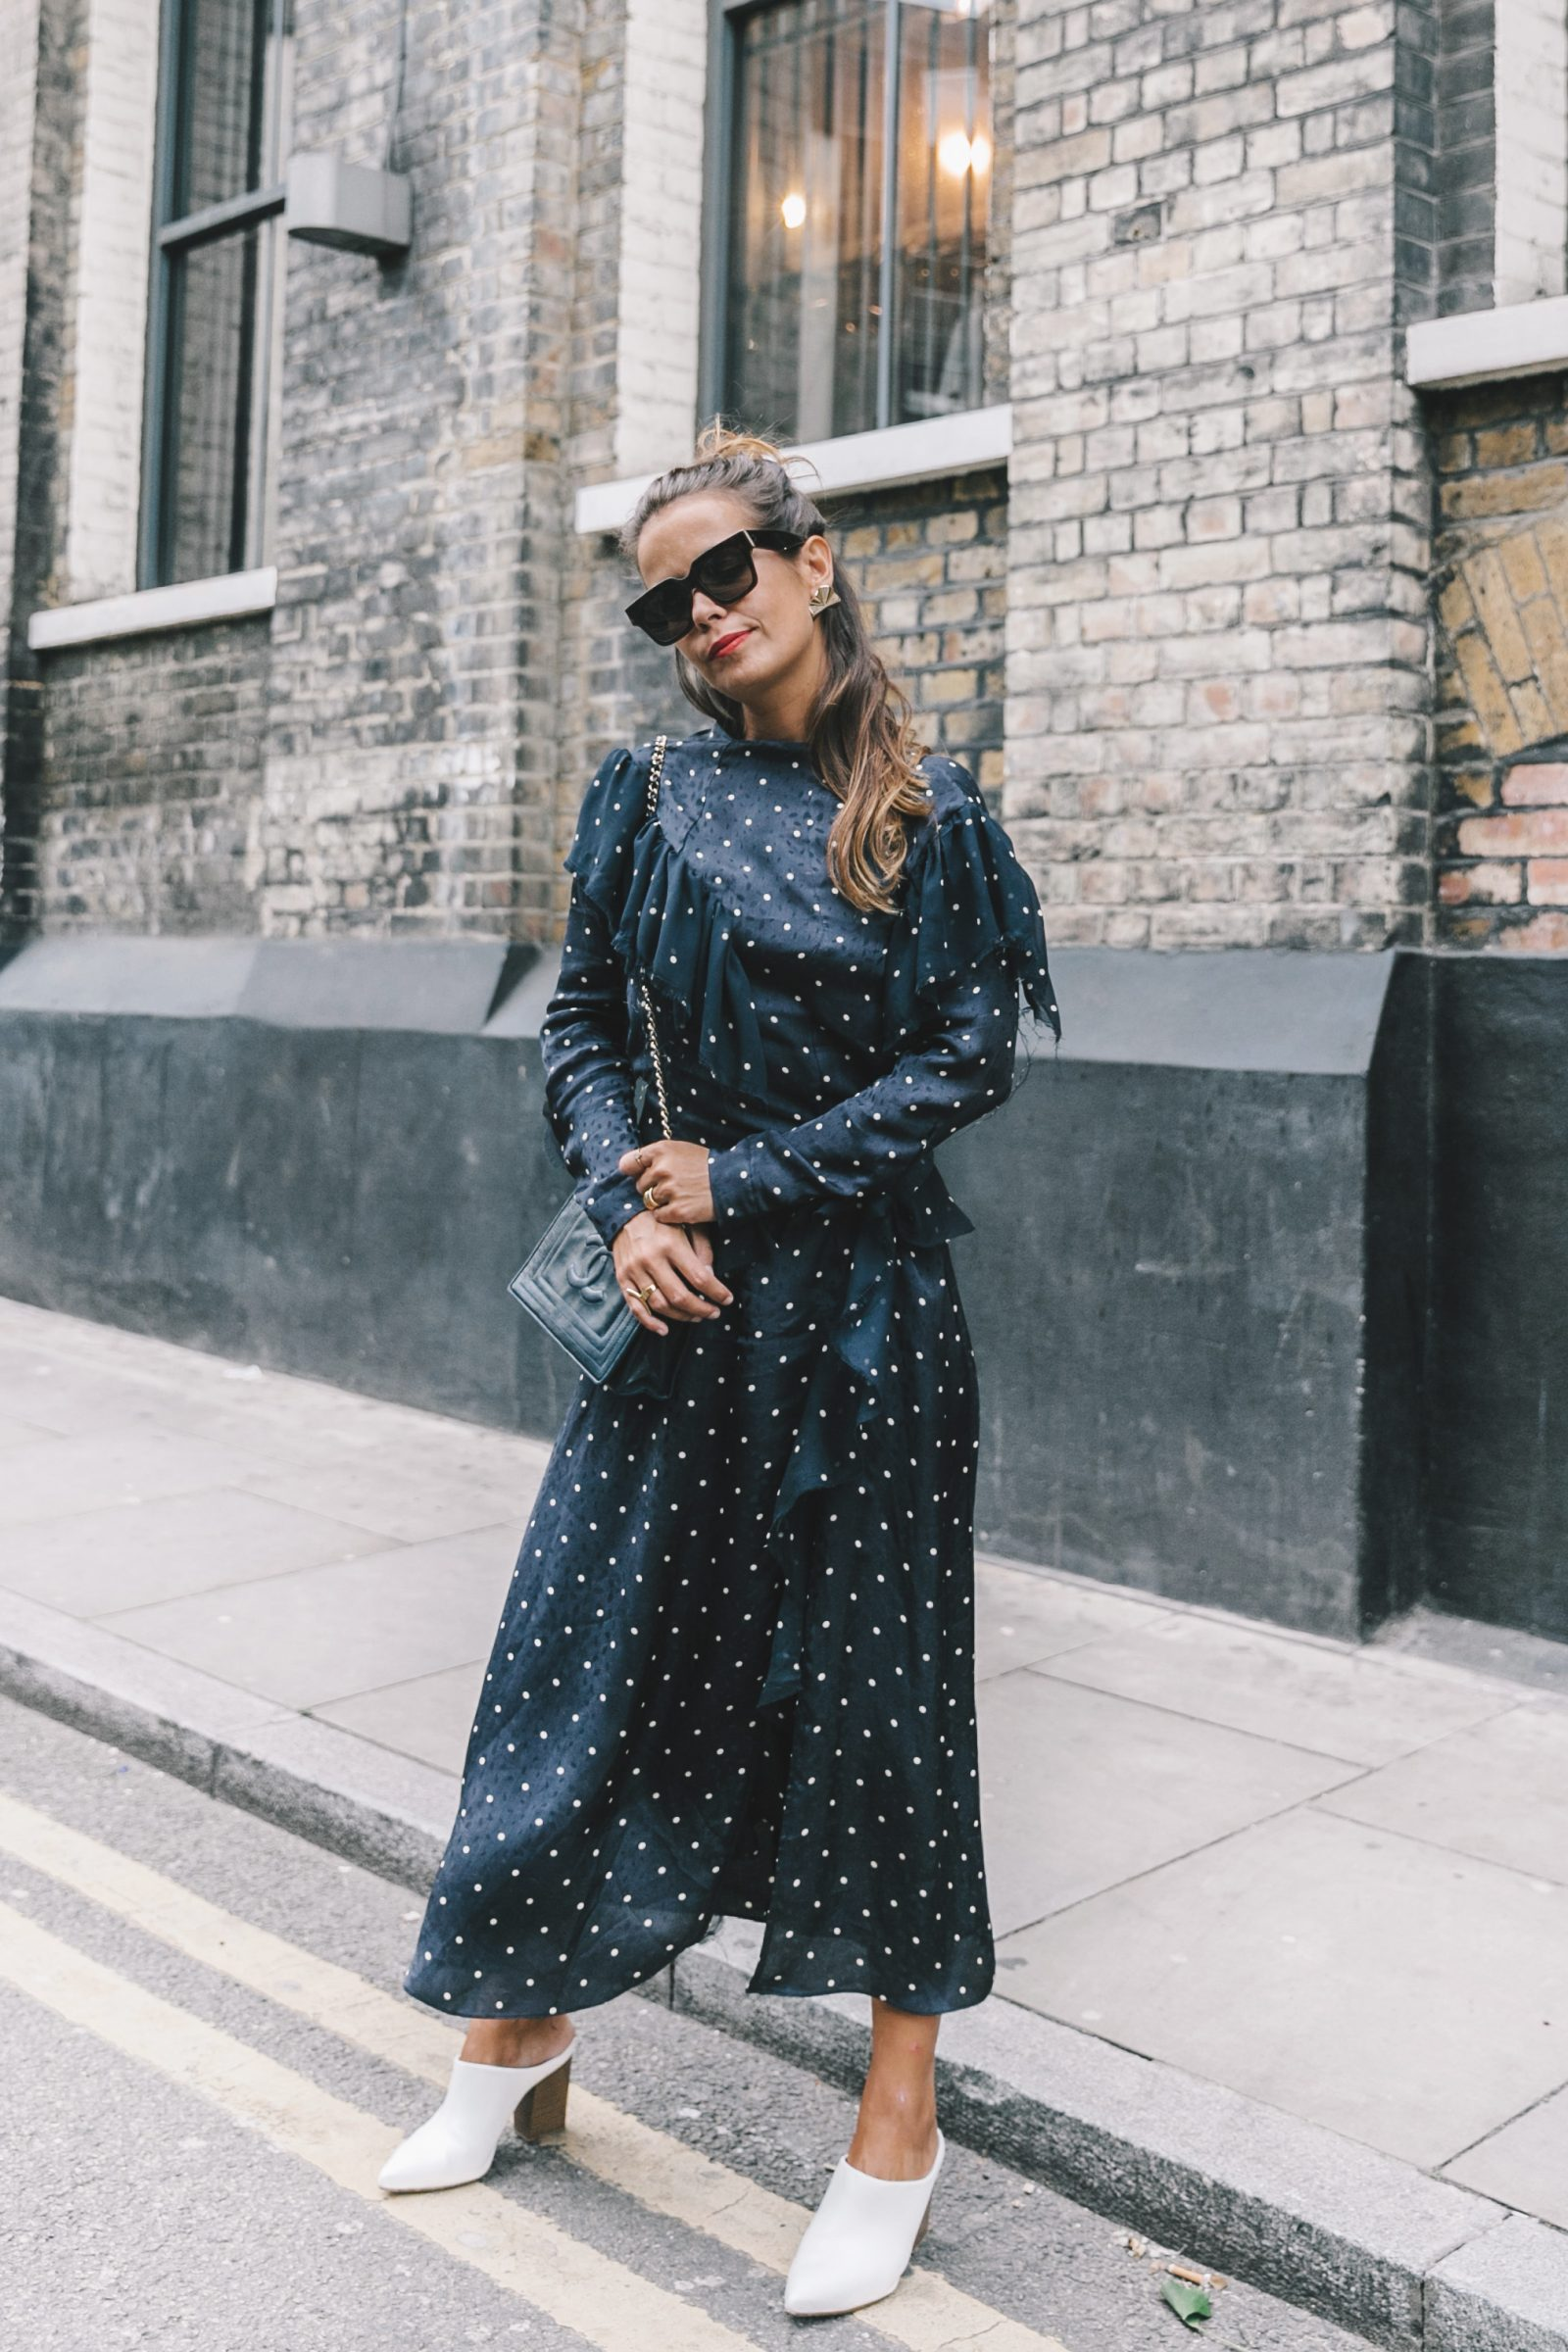 lfw-london_fashion_week_ss17-street_style-outfits-collage_vintage-vintage-topshop_unique-polka_dot_dress-white_mules-topshop_boutique-adenorah-42